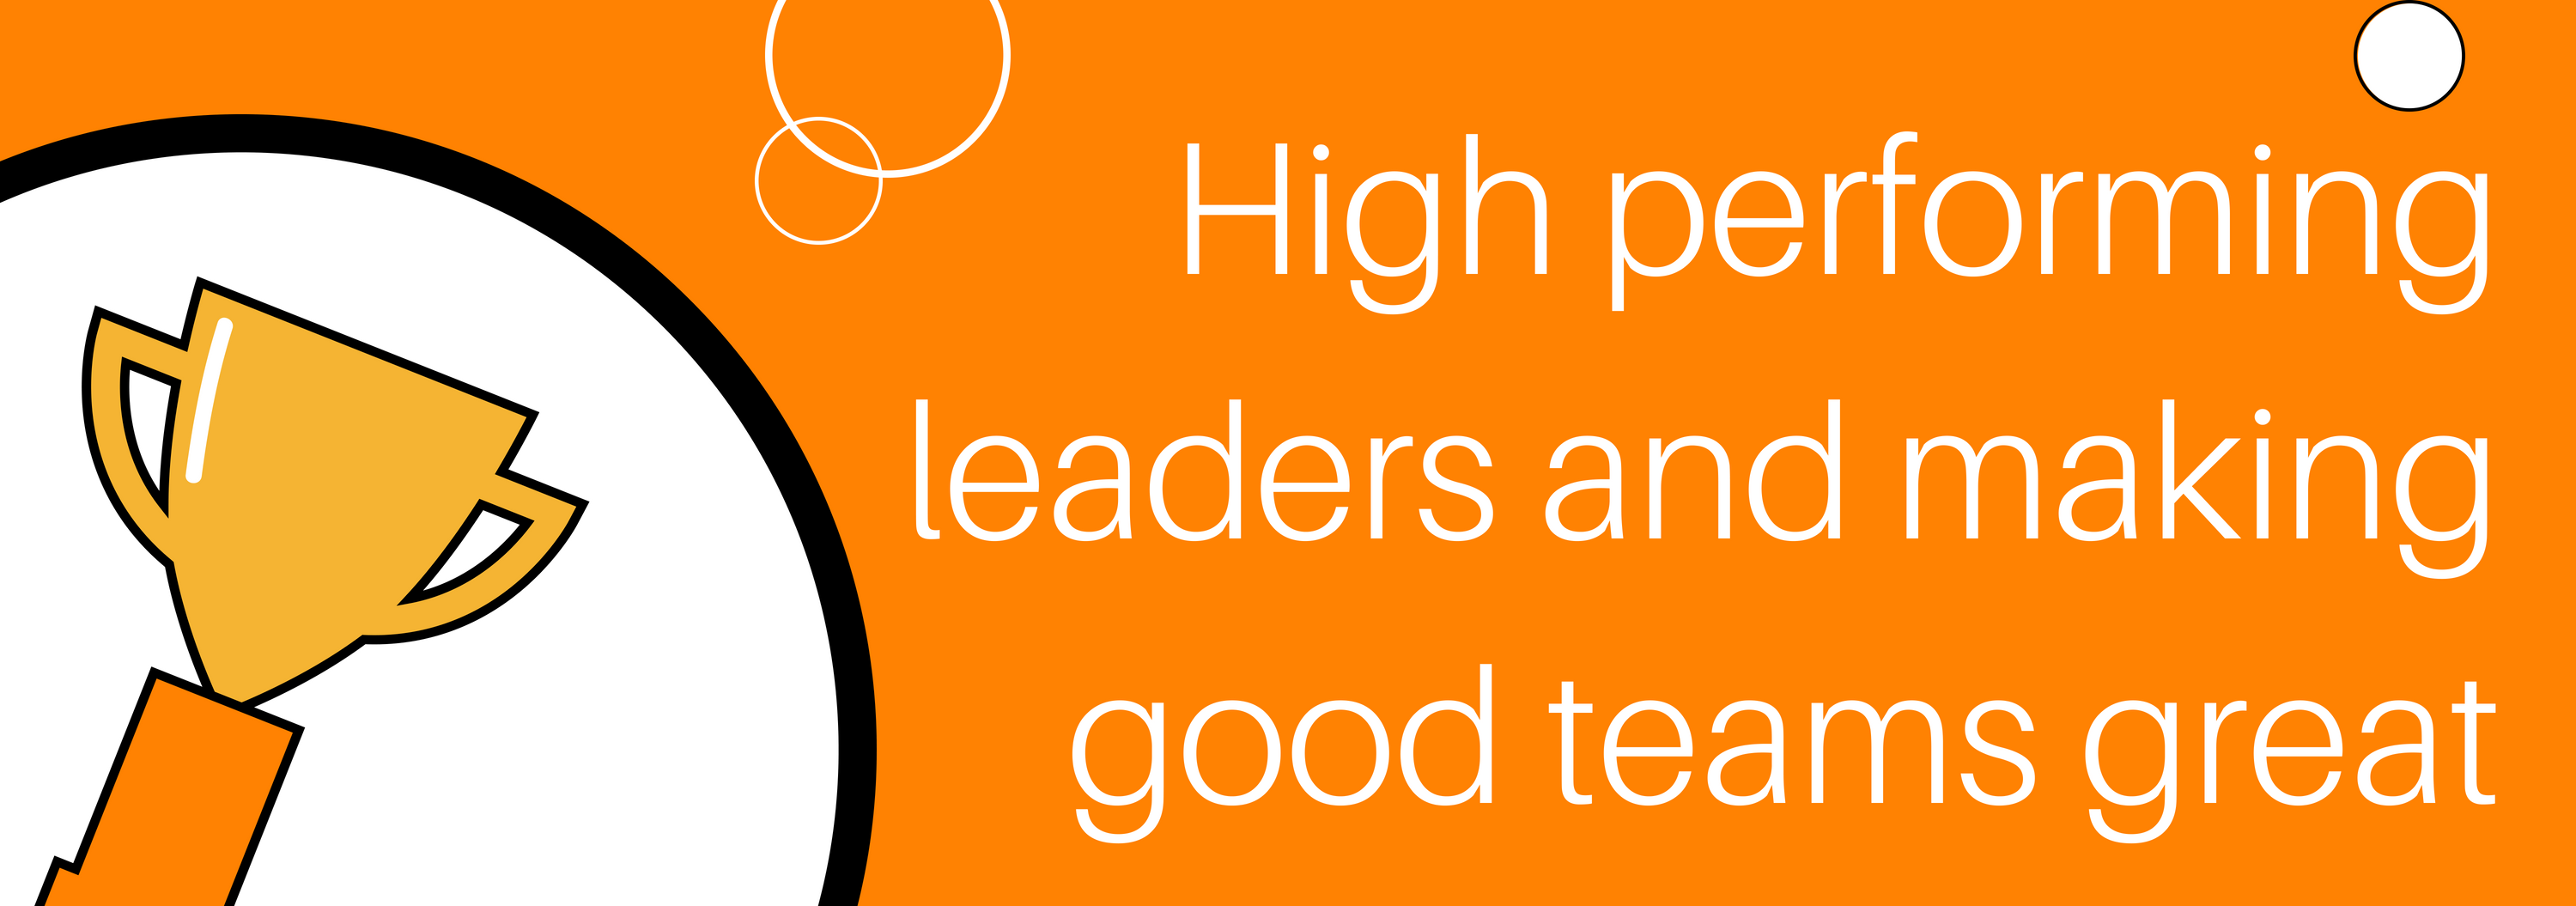 High Performing Leaders and Making Good Teams Great